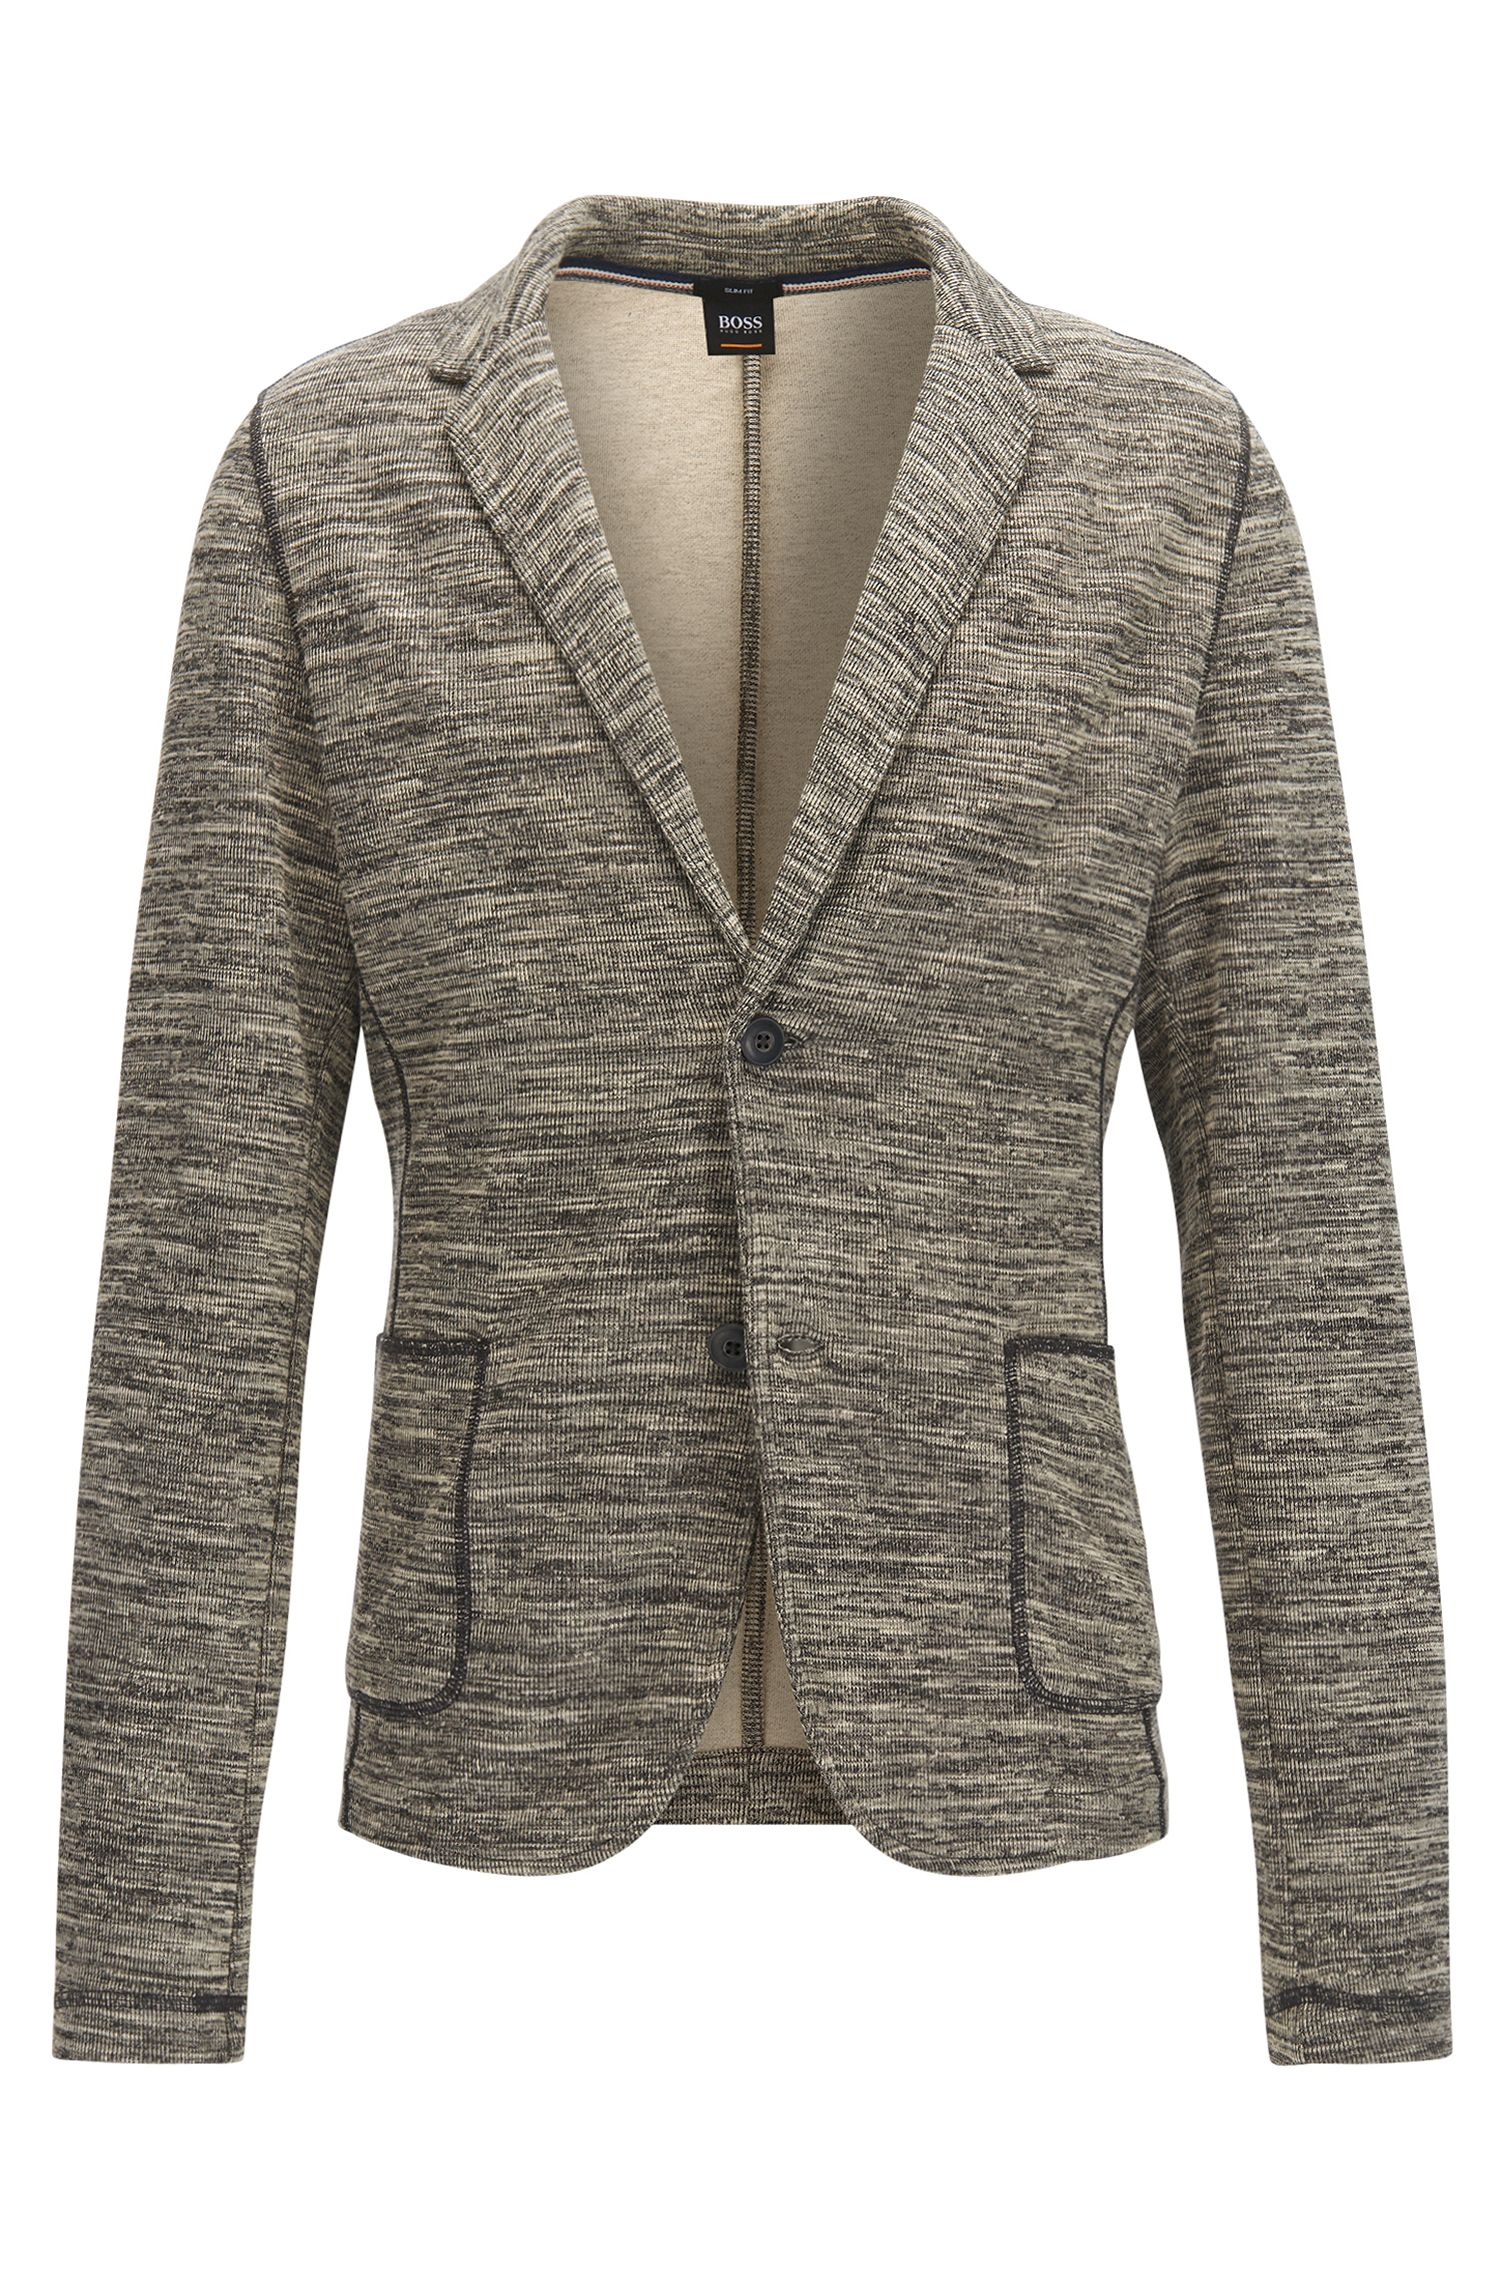 Slim-fit jacket in cotton-blend mélange fabric